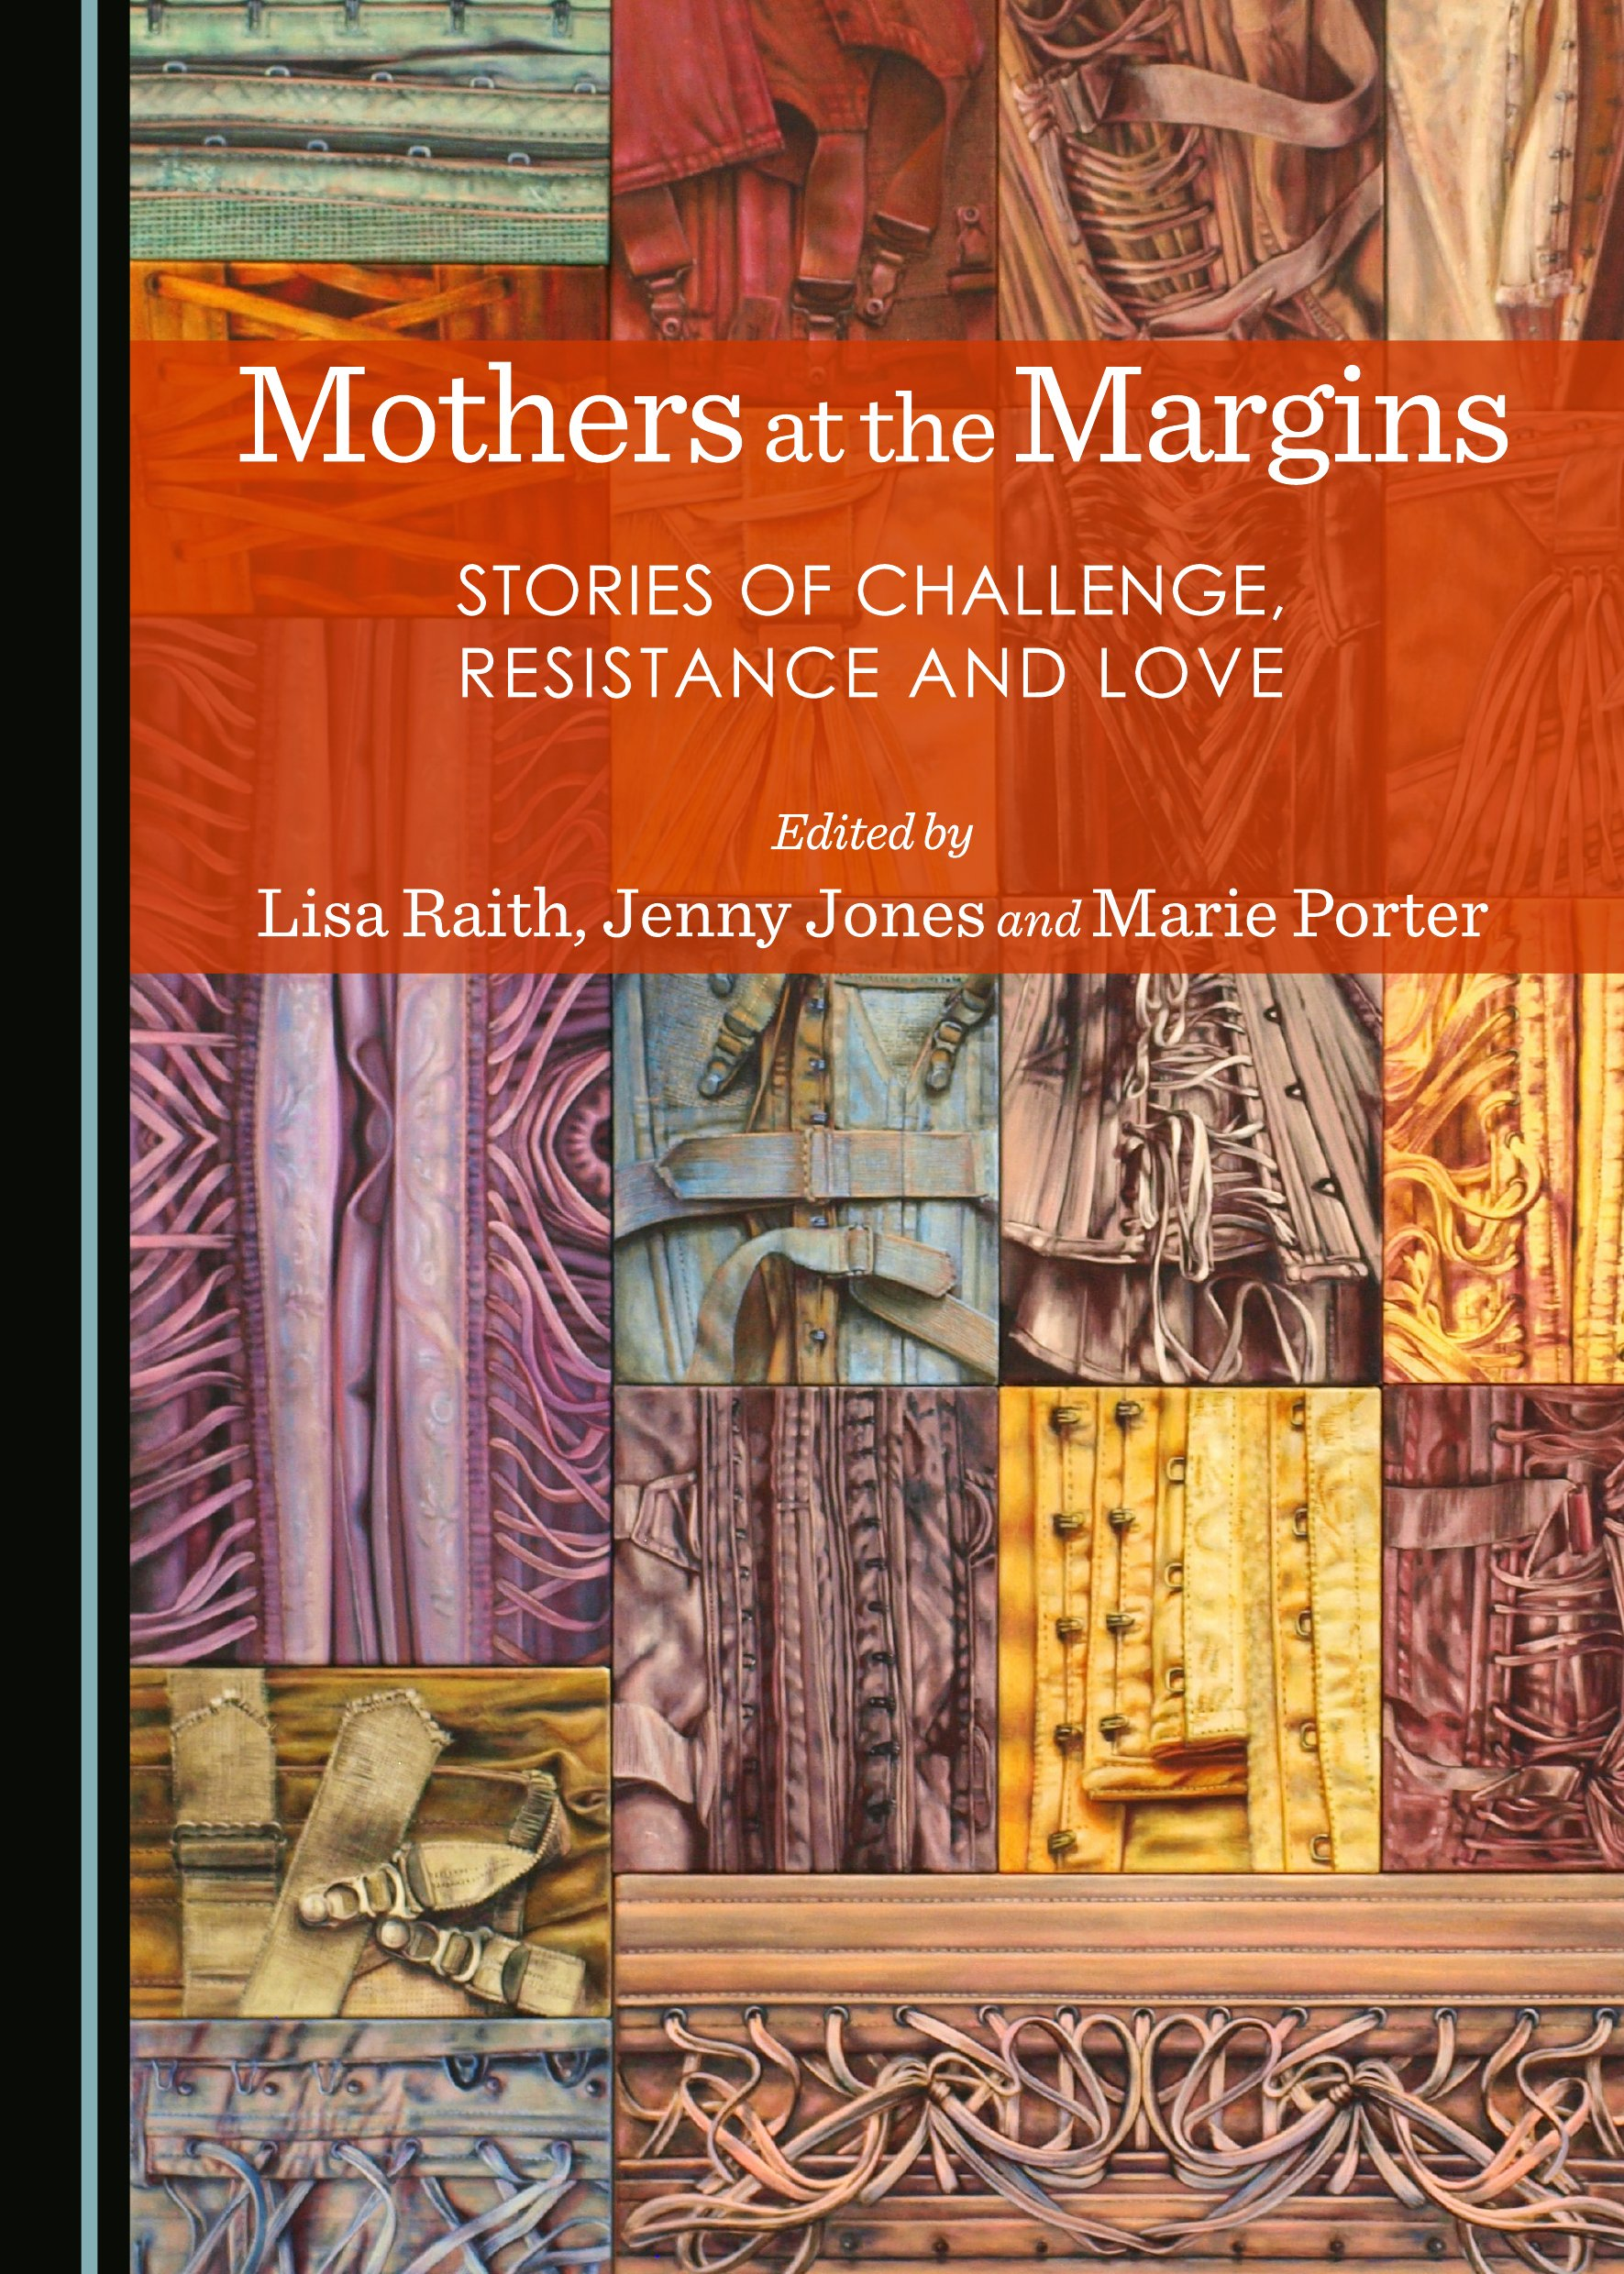 Mothers at the Margins: Stories of Challenge, Resistance and Love